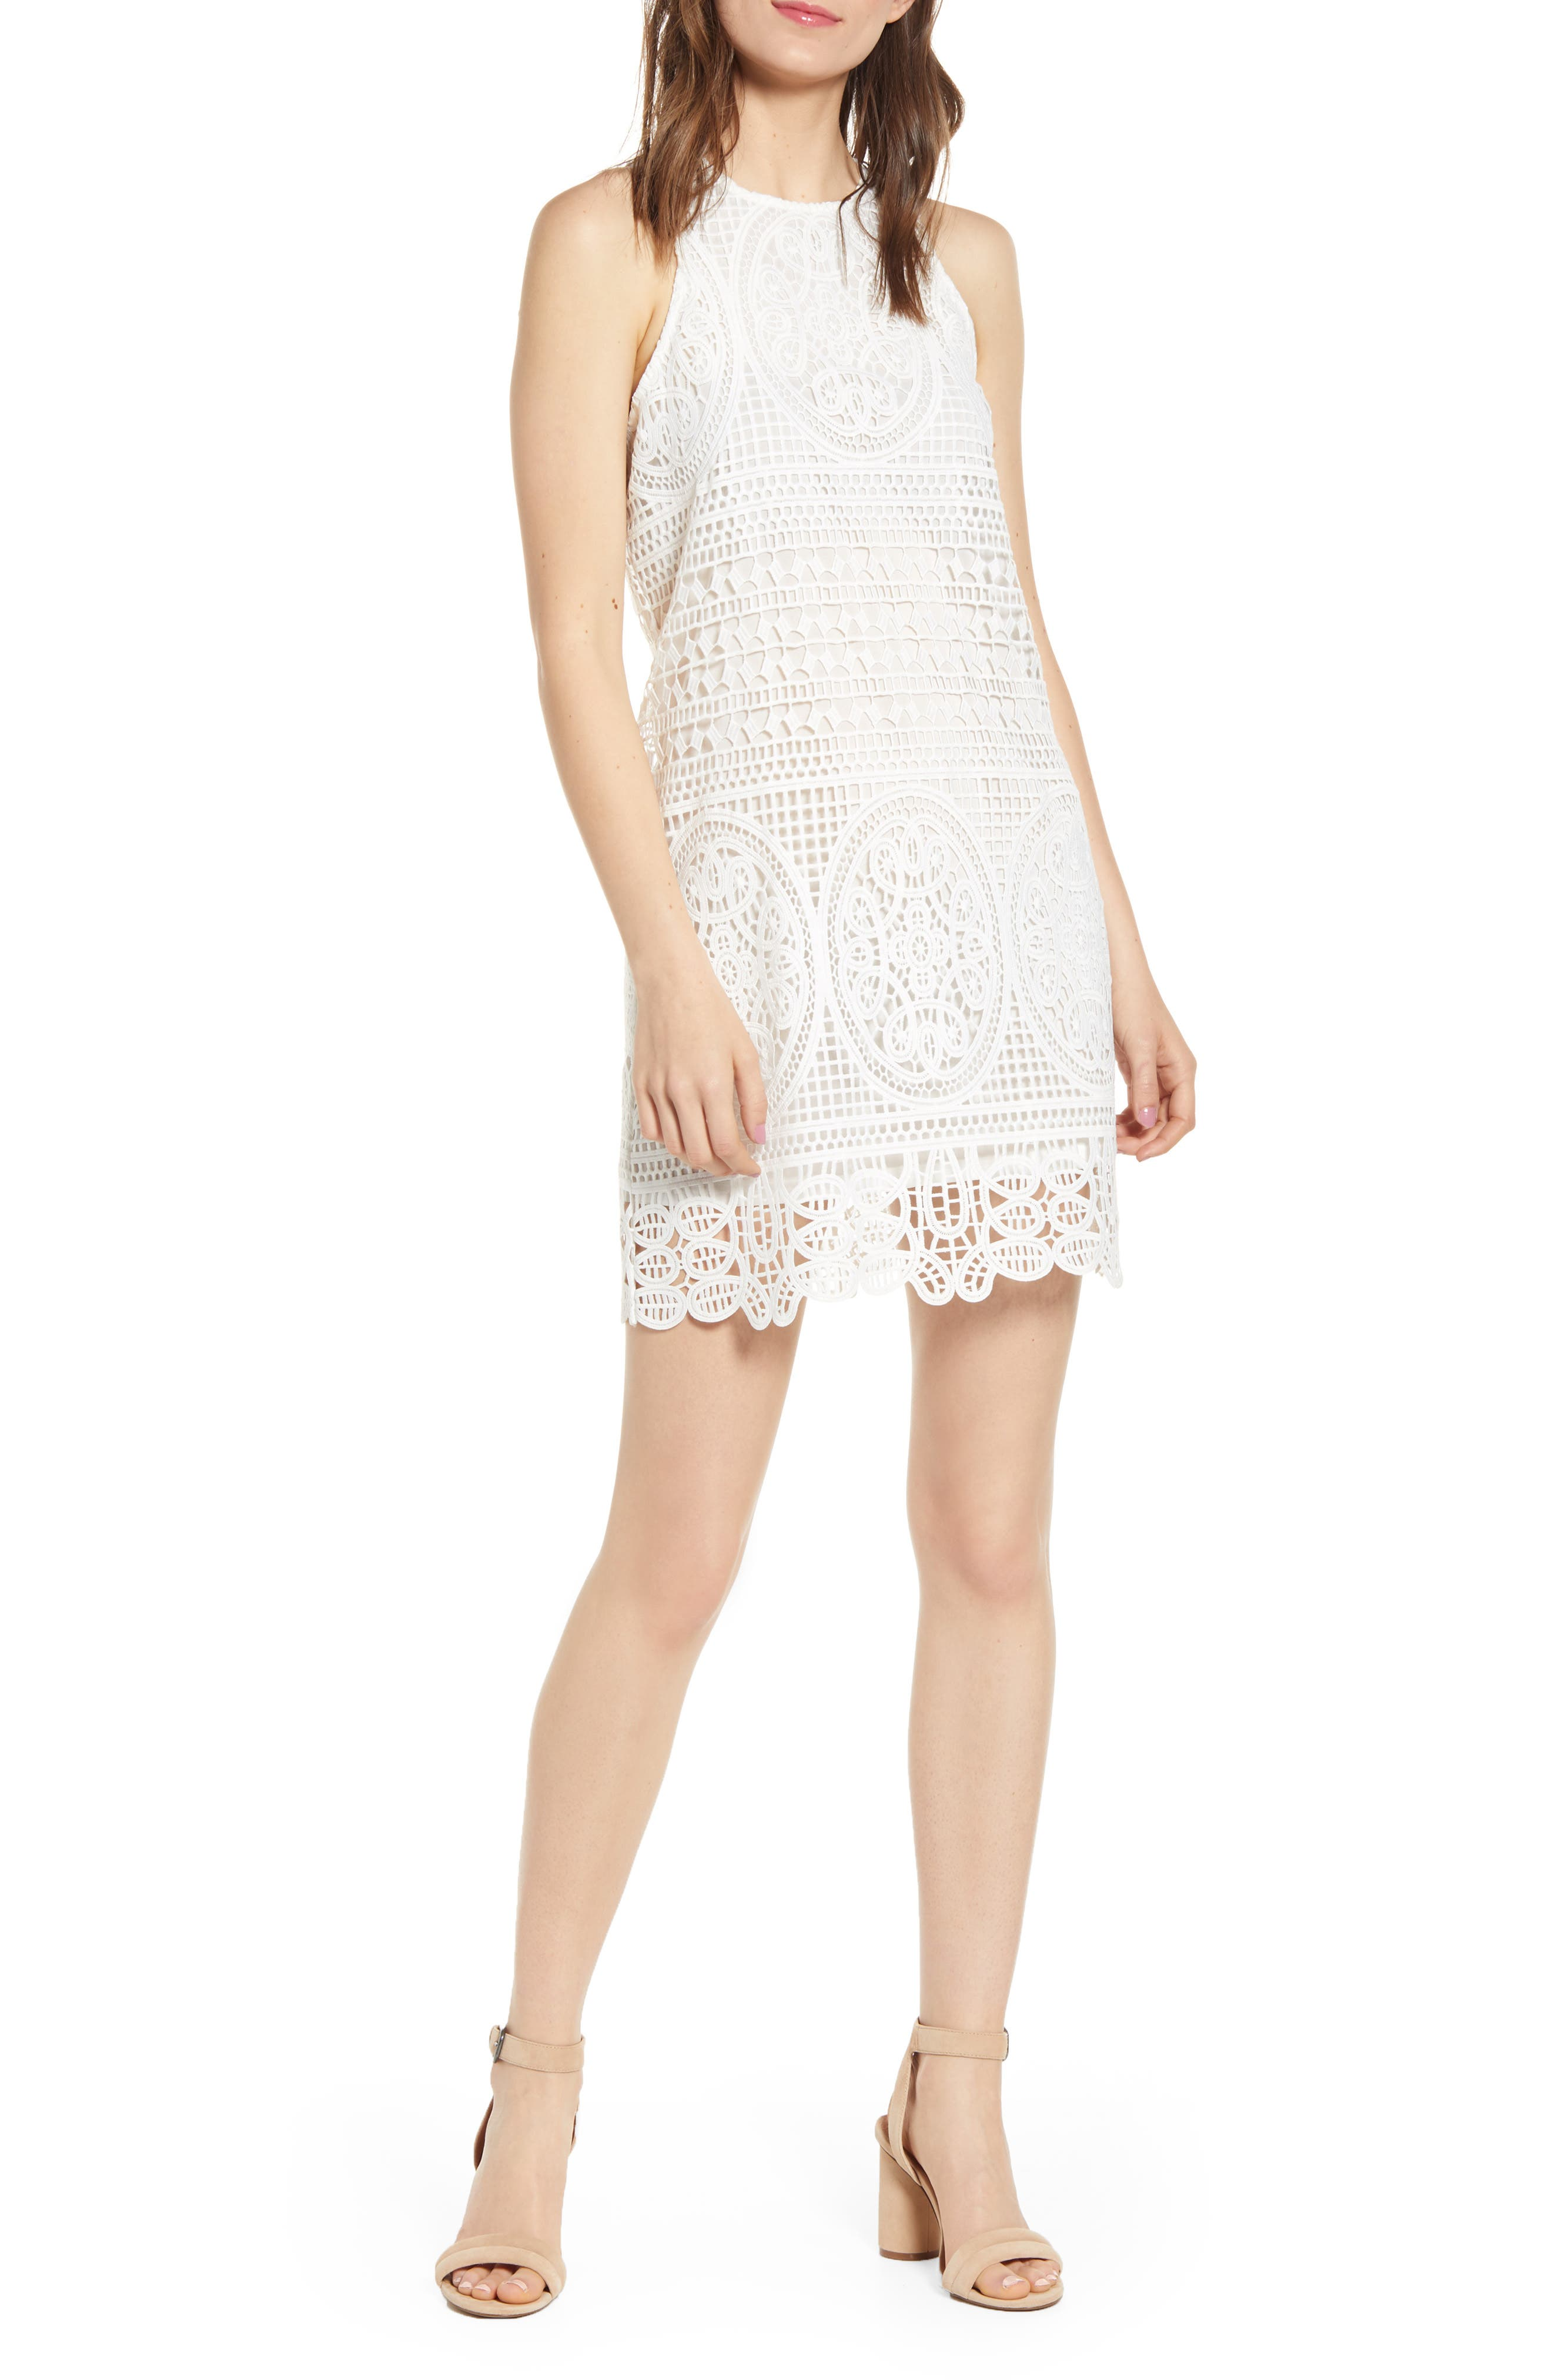 Bishop + Young Love In White Crochet Sleeveless Cotton Shift Dress, White